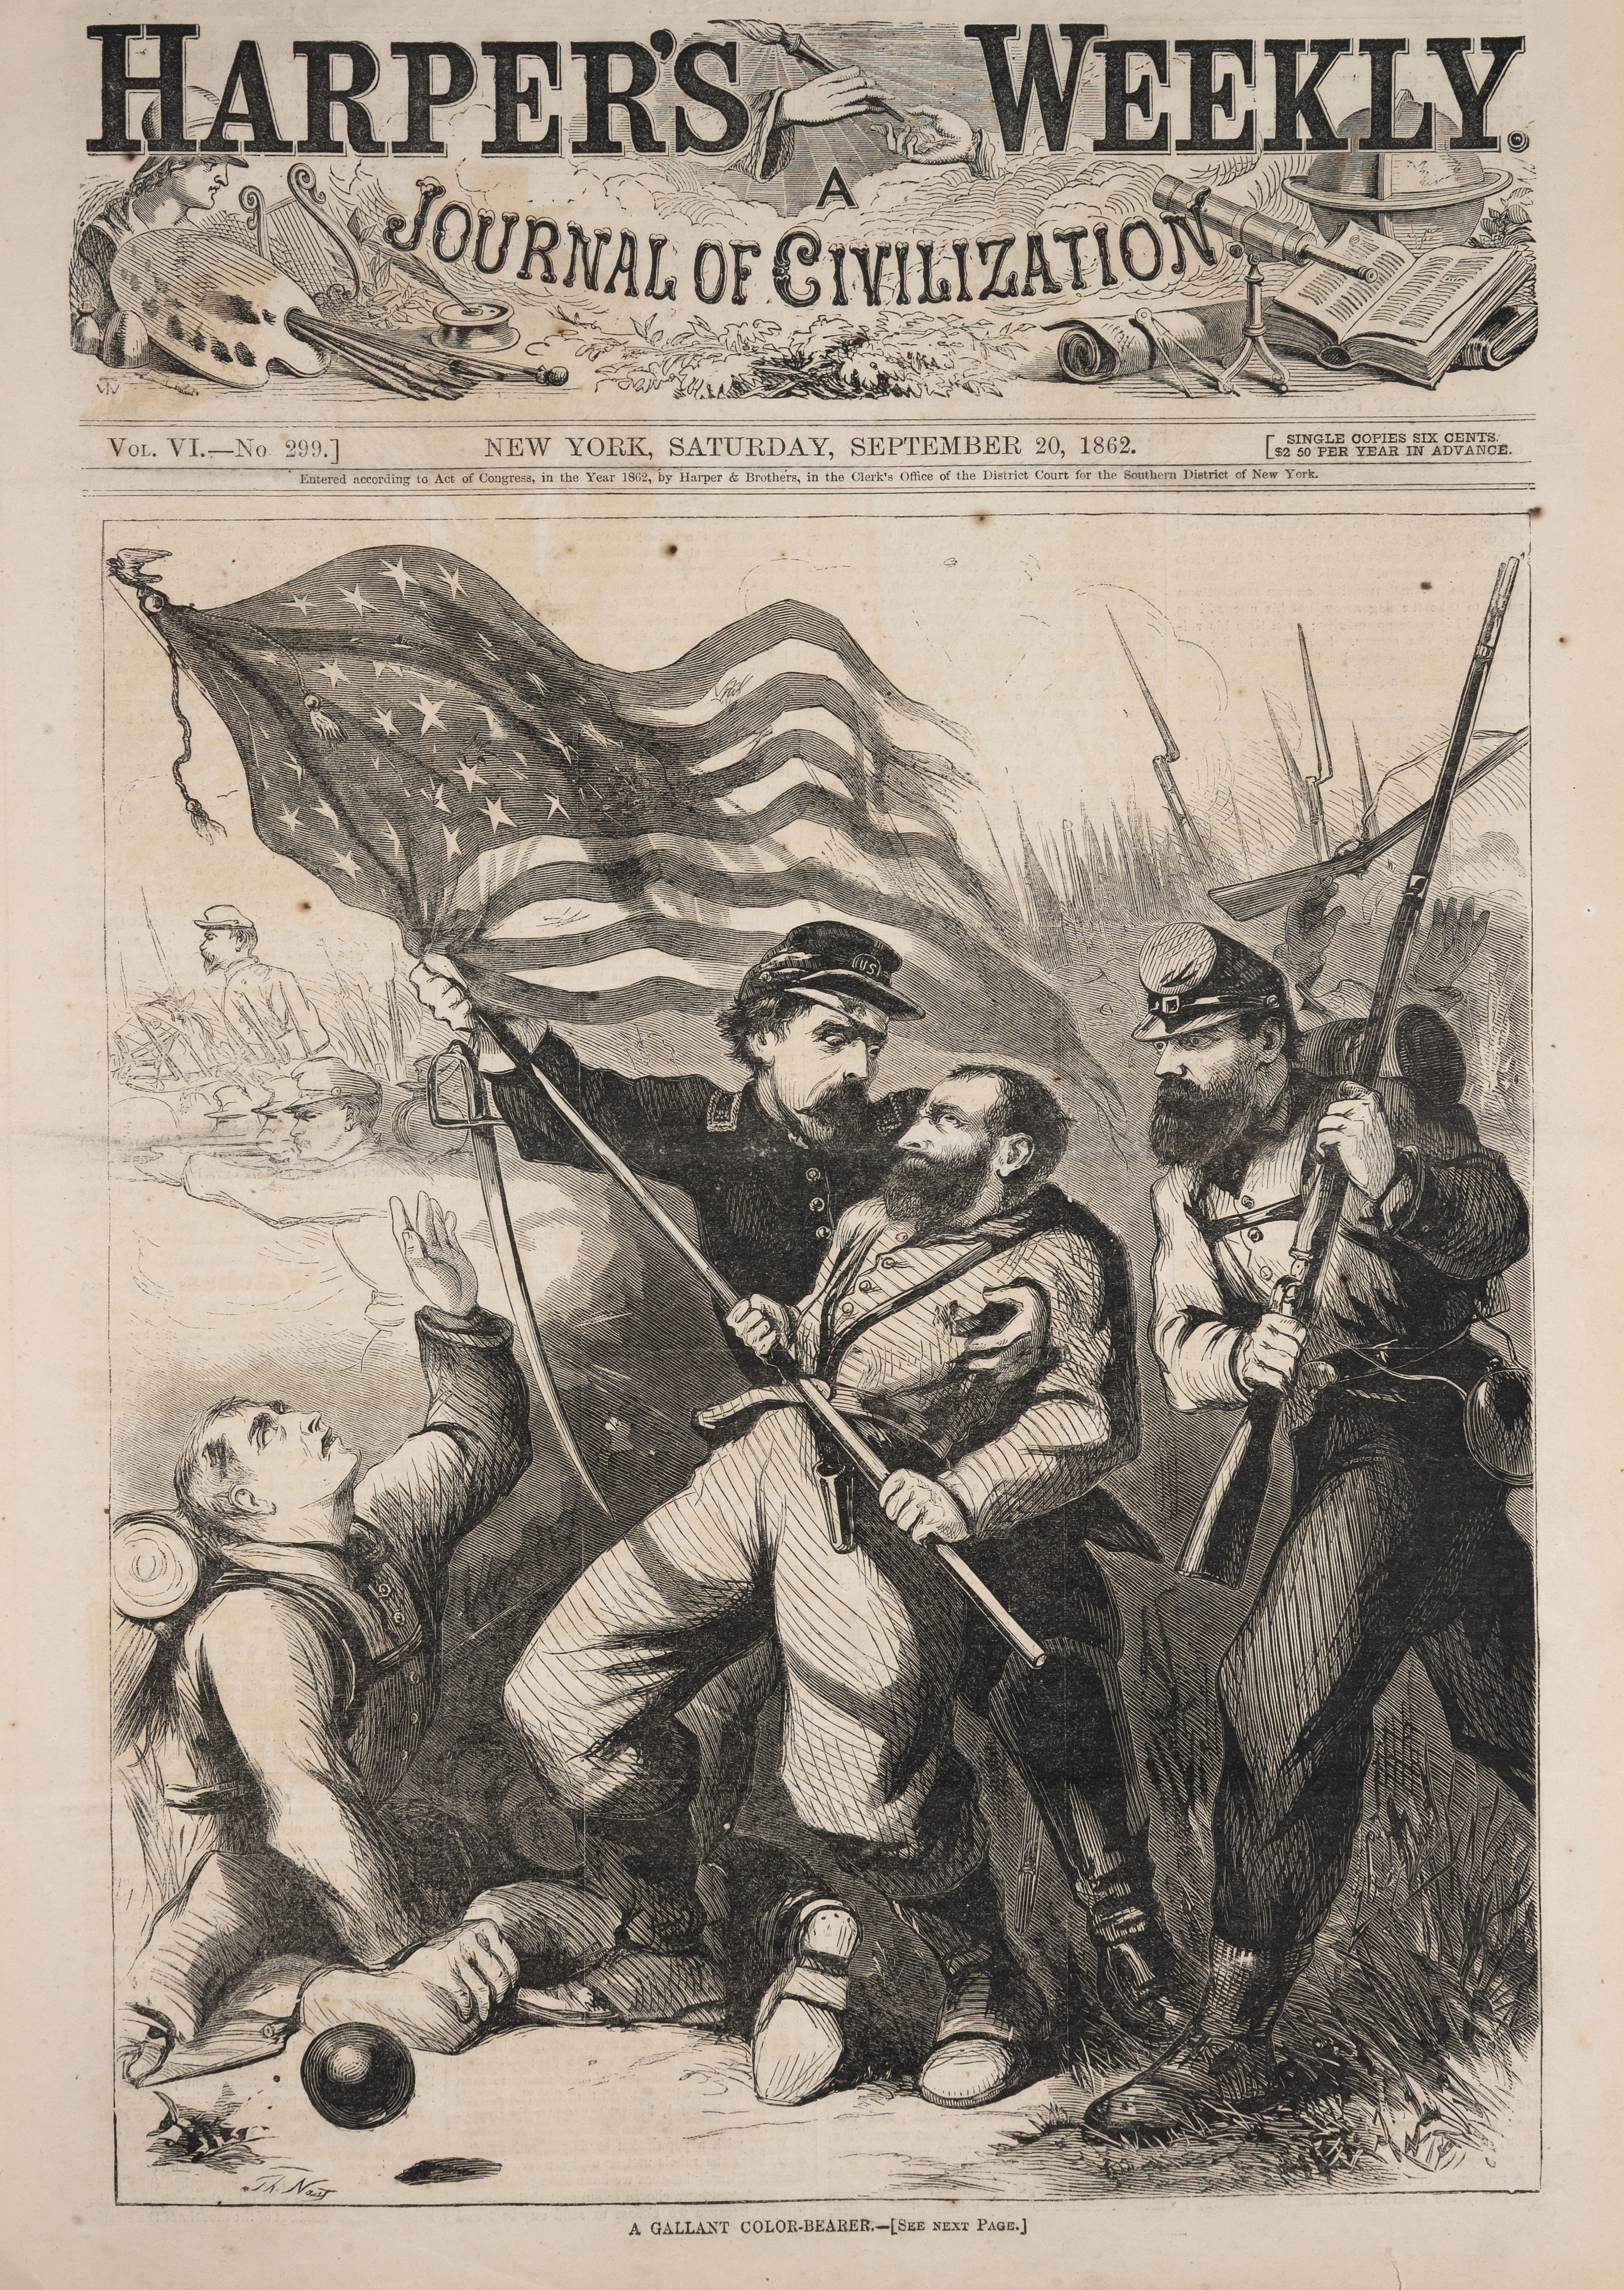 """""""A Gallant Color-Bearer"""" depicts the 10th New York Regiment engaged in battle with Confederate soldiers. In this black and white engraving, a standing Union soldier catches in his arms the wounded color-bearer who is falling backwards while the unwounded soldier reaches for the American flag to prevent it from falling to the ground. On the left, a kneeling soldier looks up and reaches to break the flag's fall. This engraving pays homage to the service and sacrifices made by Union soldiers, and the dedication to the flag that they served."""